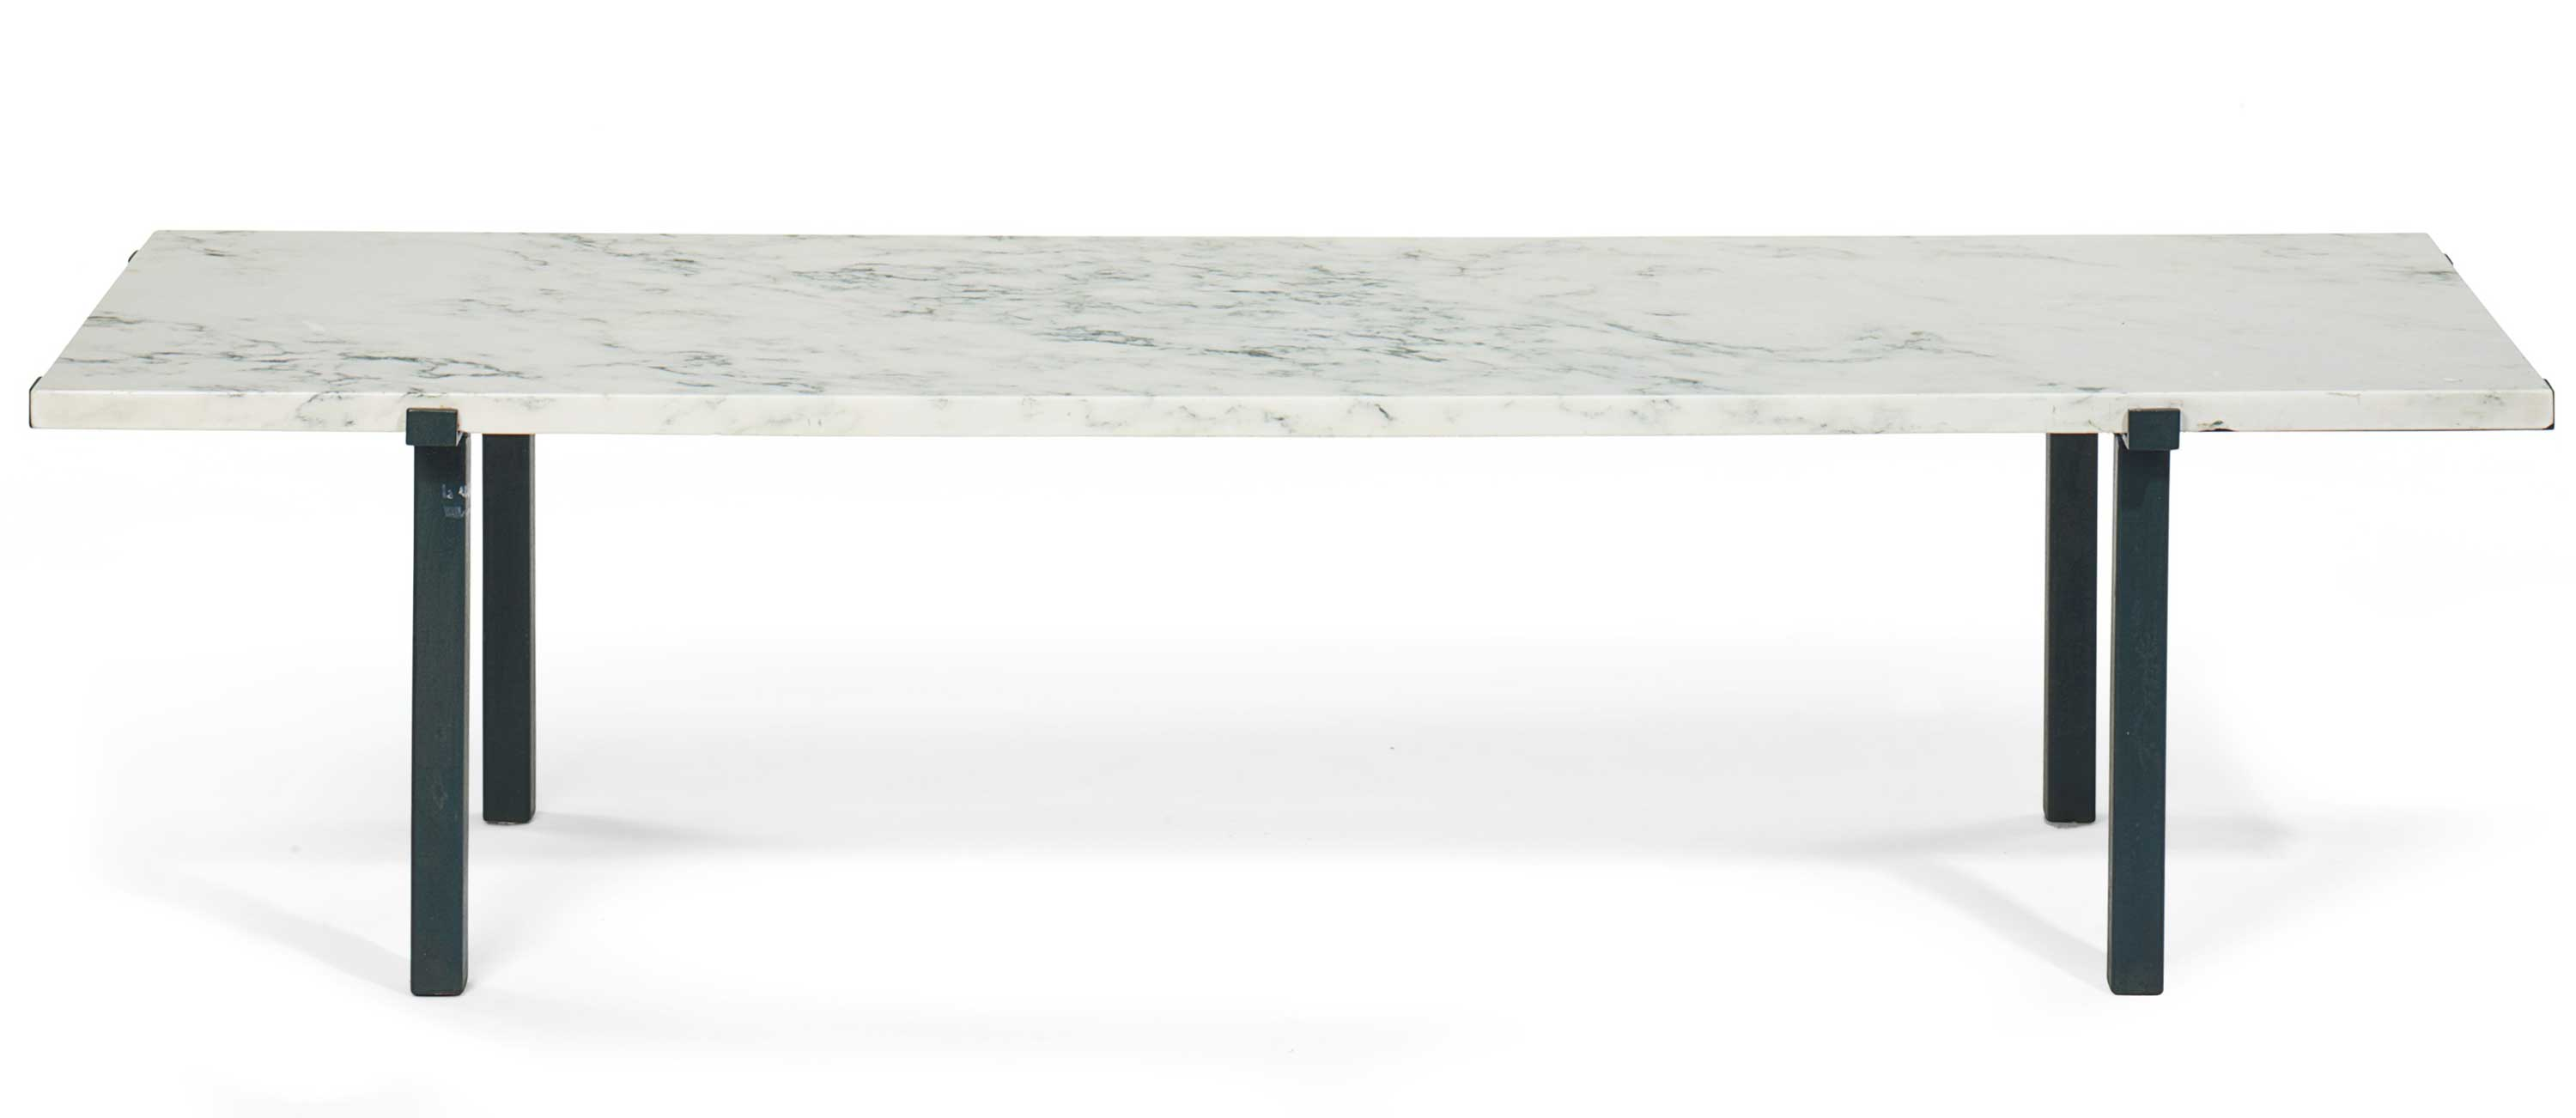 <b>A Green Patinated Bronze and White Marble Low Table</b><br/>by William Haines, Circa 1960